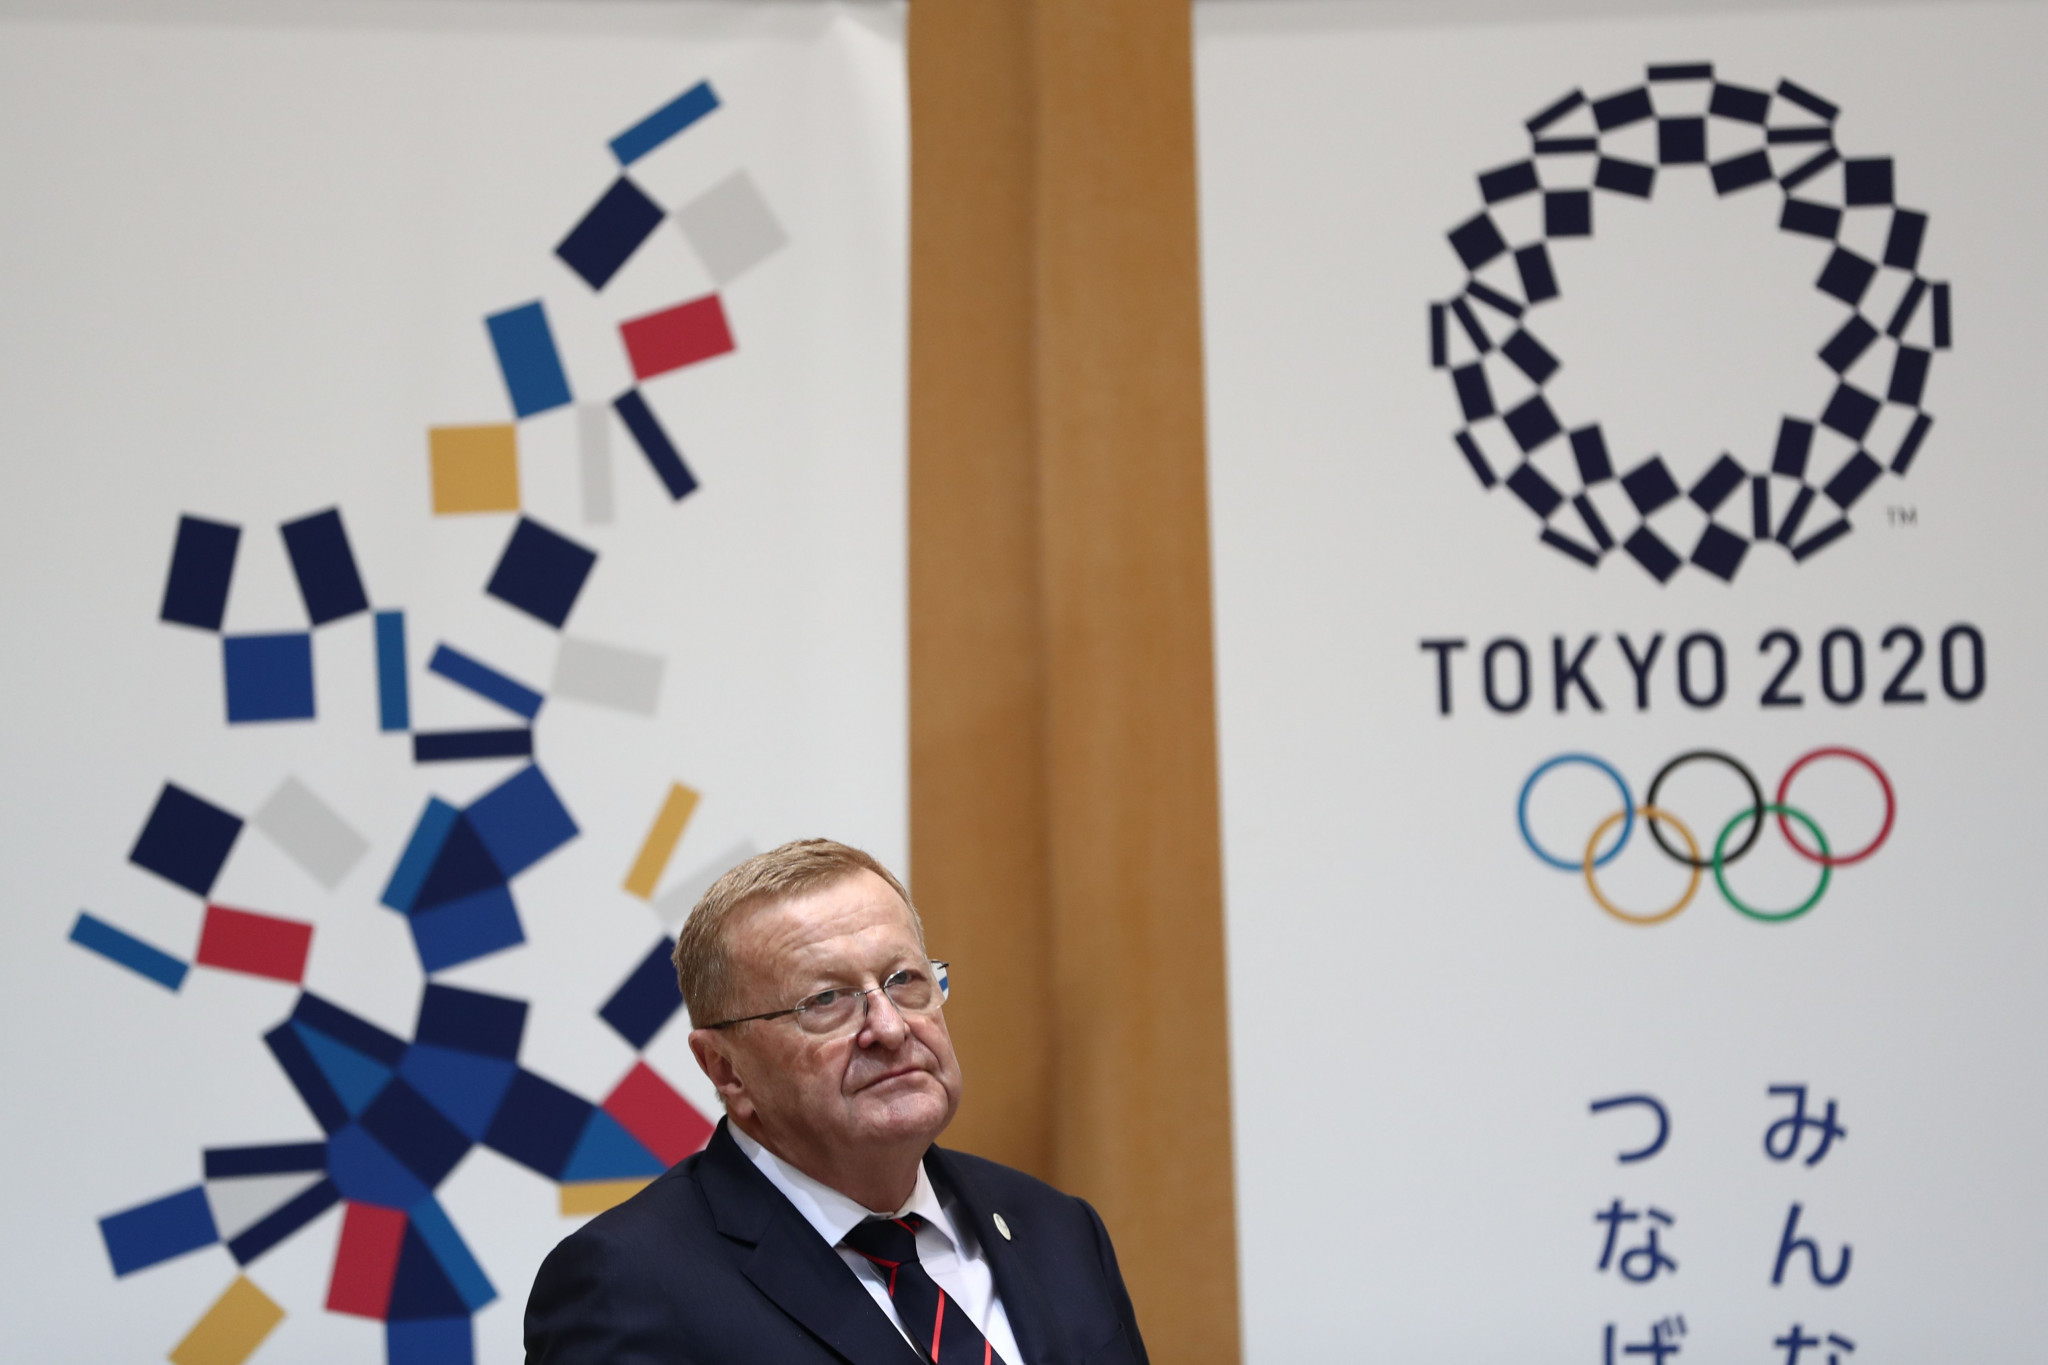 Coates claims Tokyo 2020 will go ahead next year with or without COVID-19